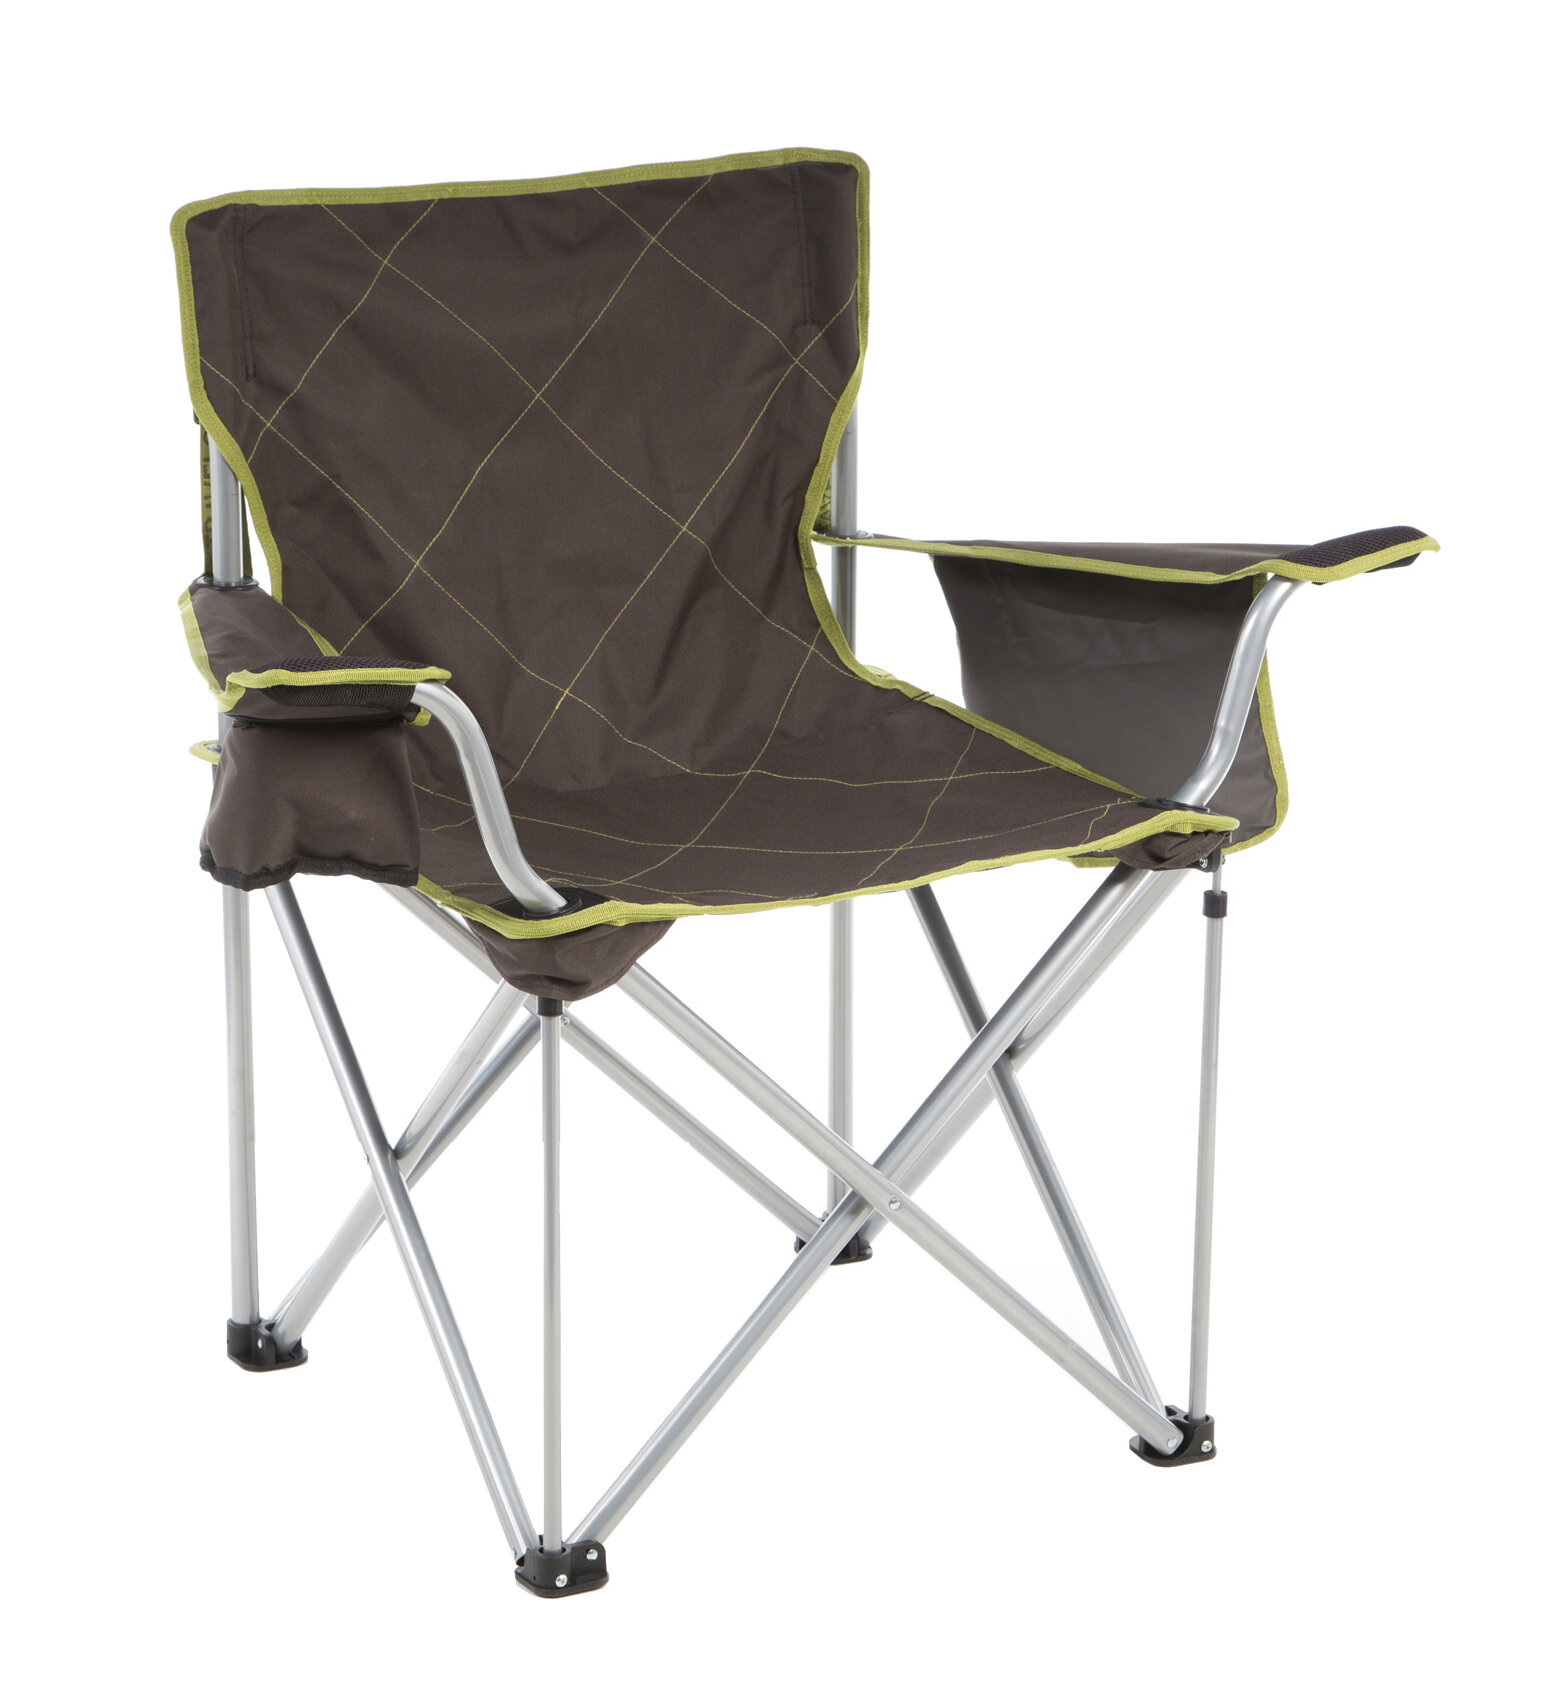 Travel Chair Folding Camping Chair & Reviews